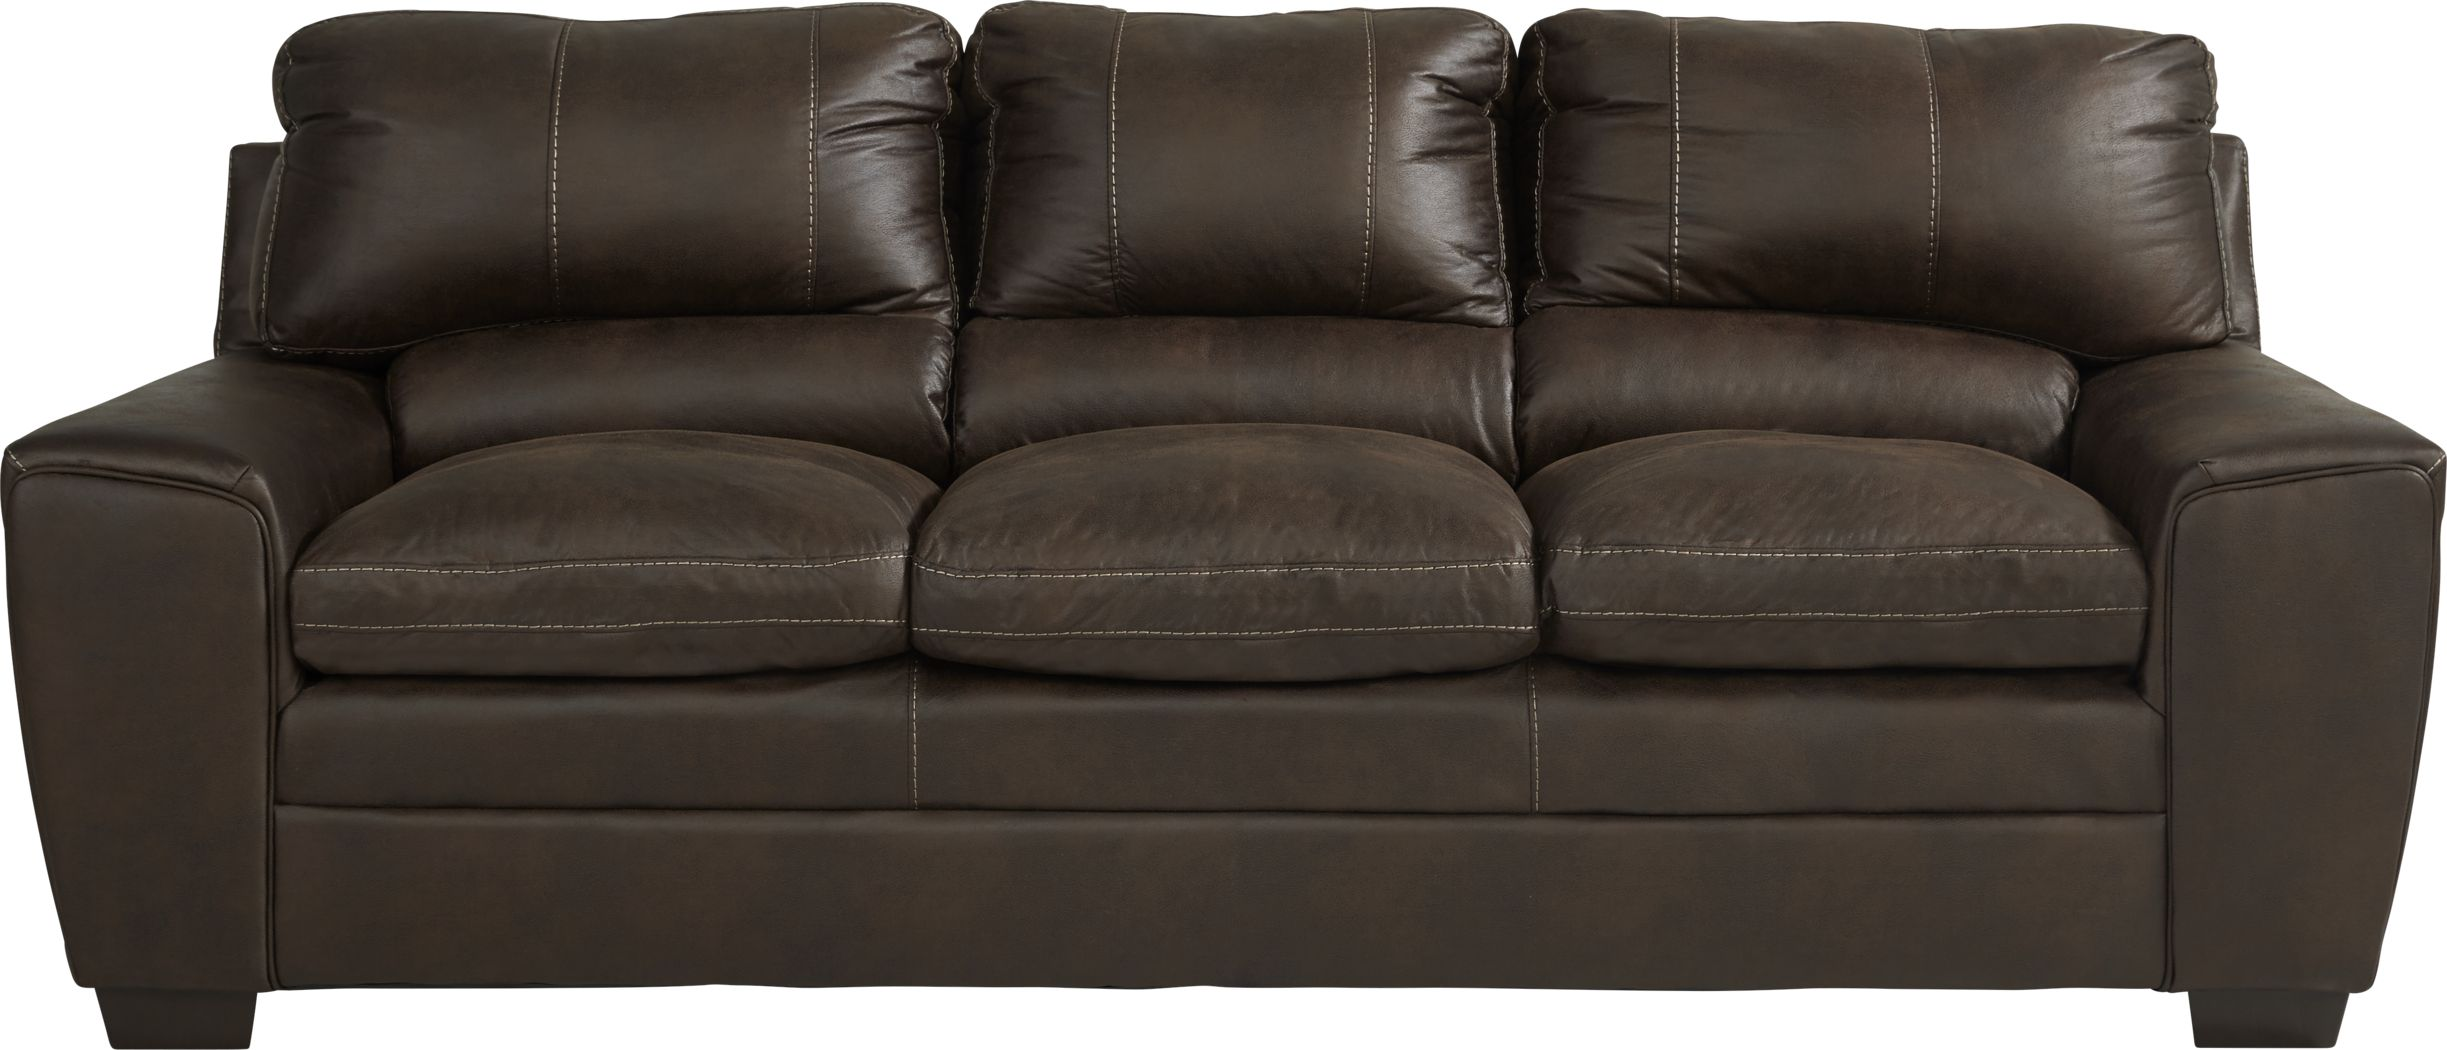 Discount Sofas Affordable Couches For Sale